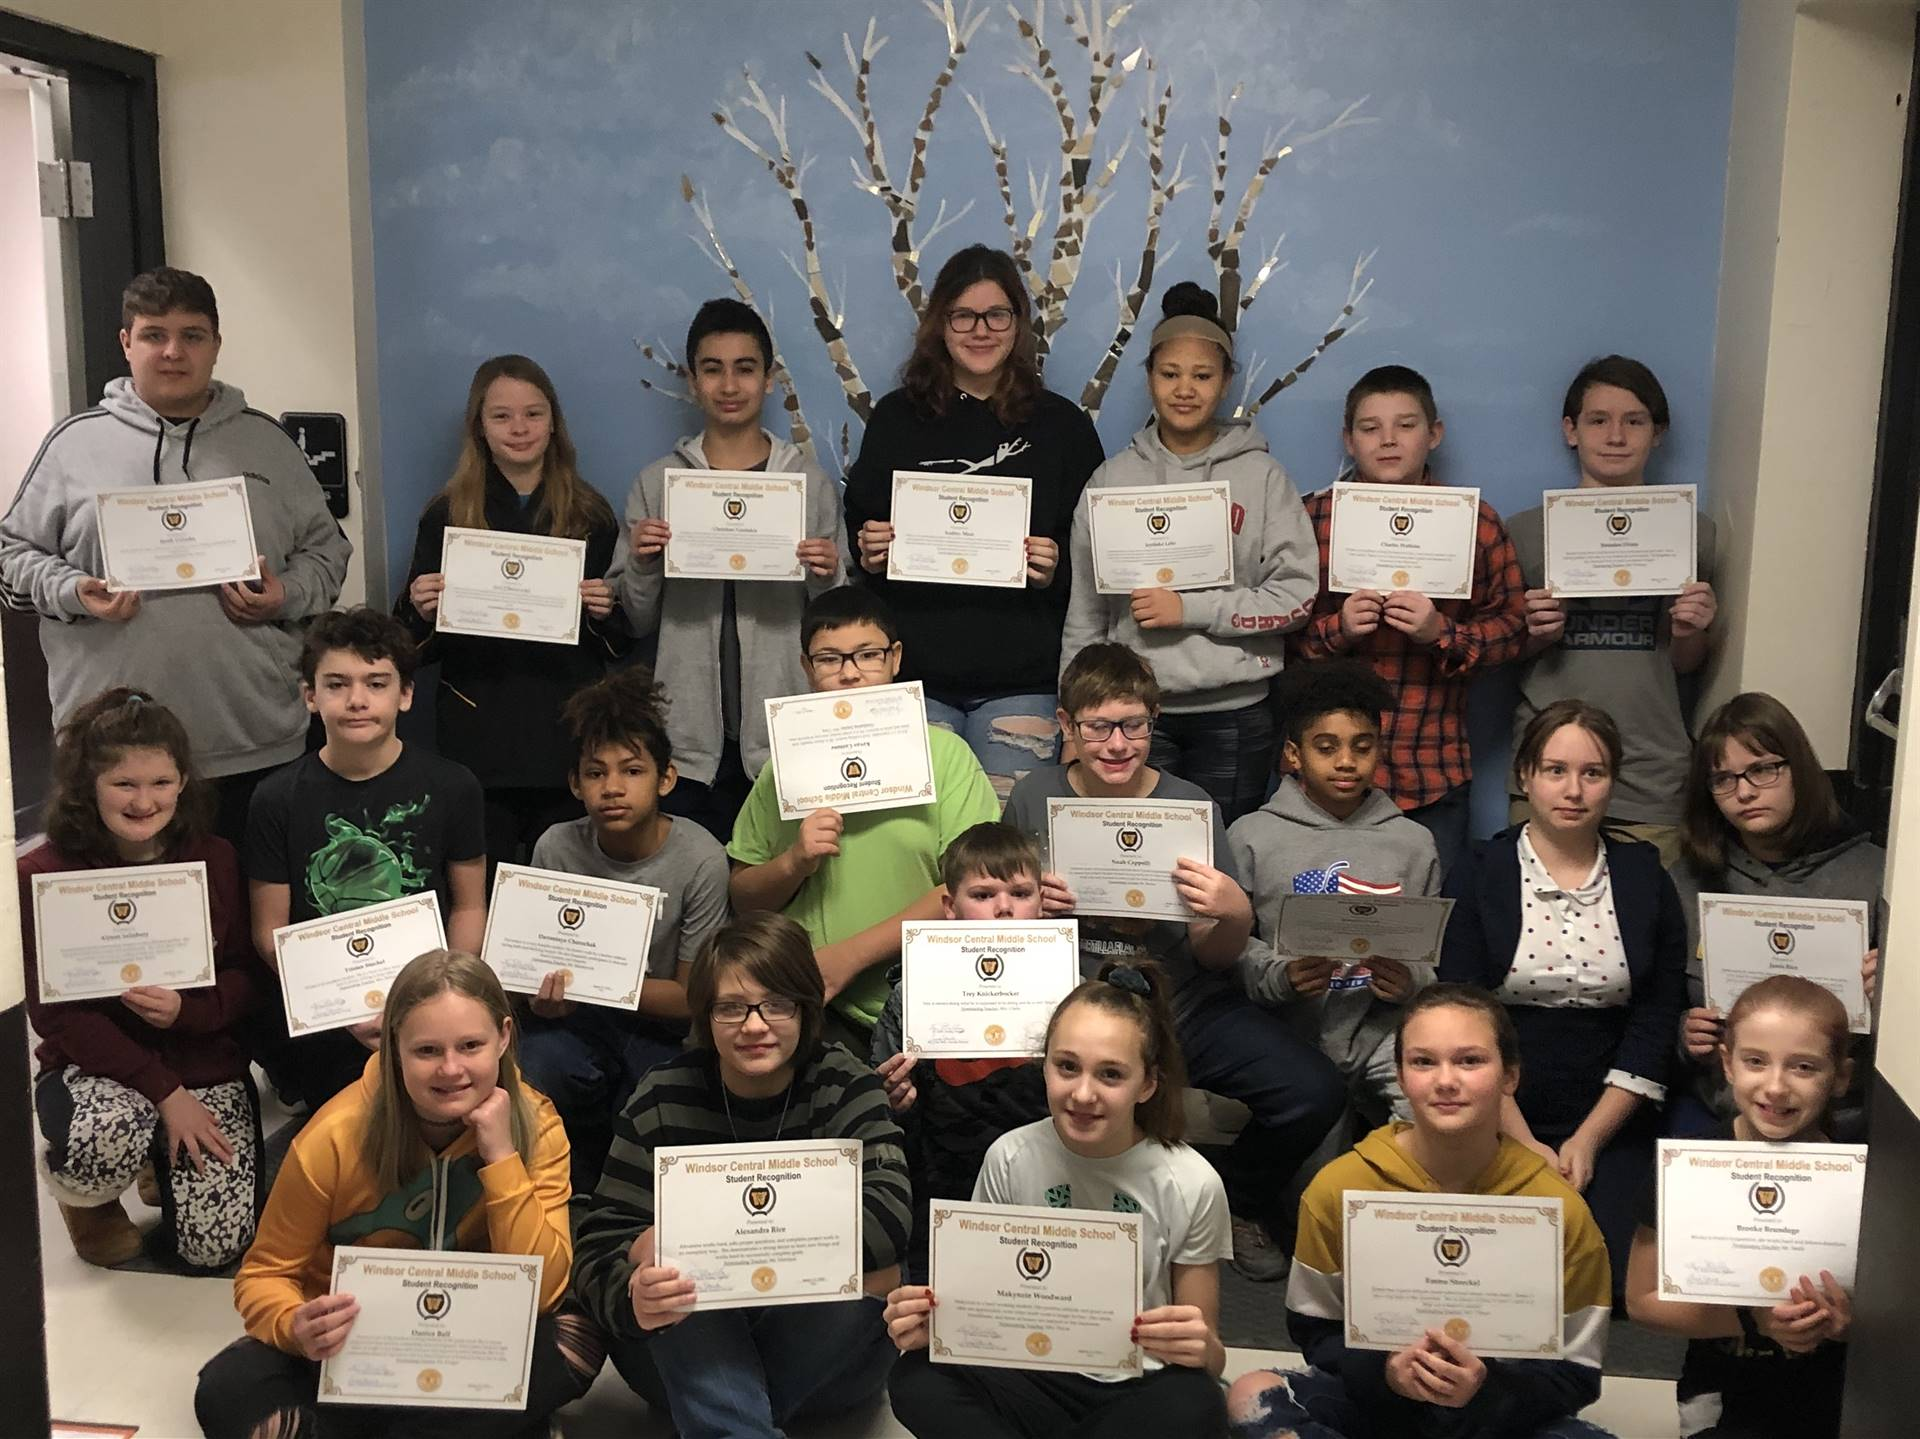 Three rows of children holding certificates